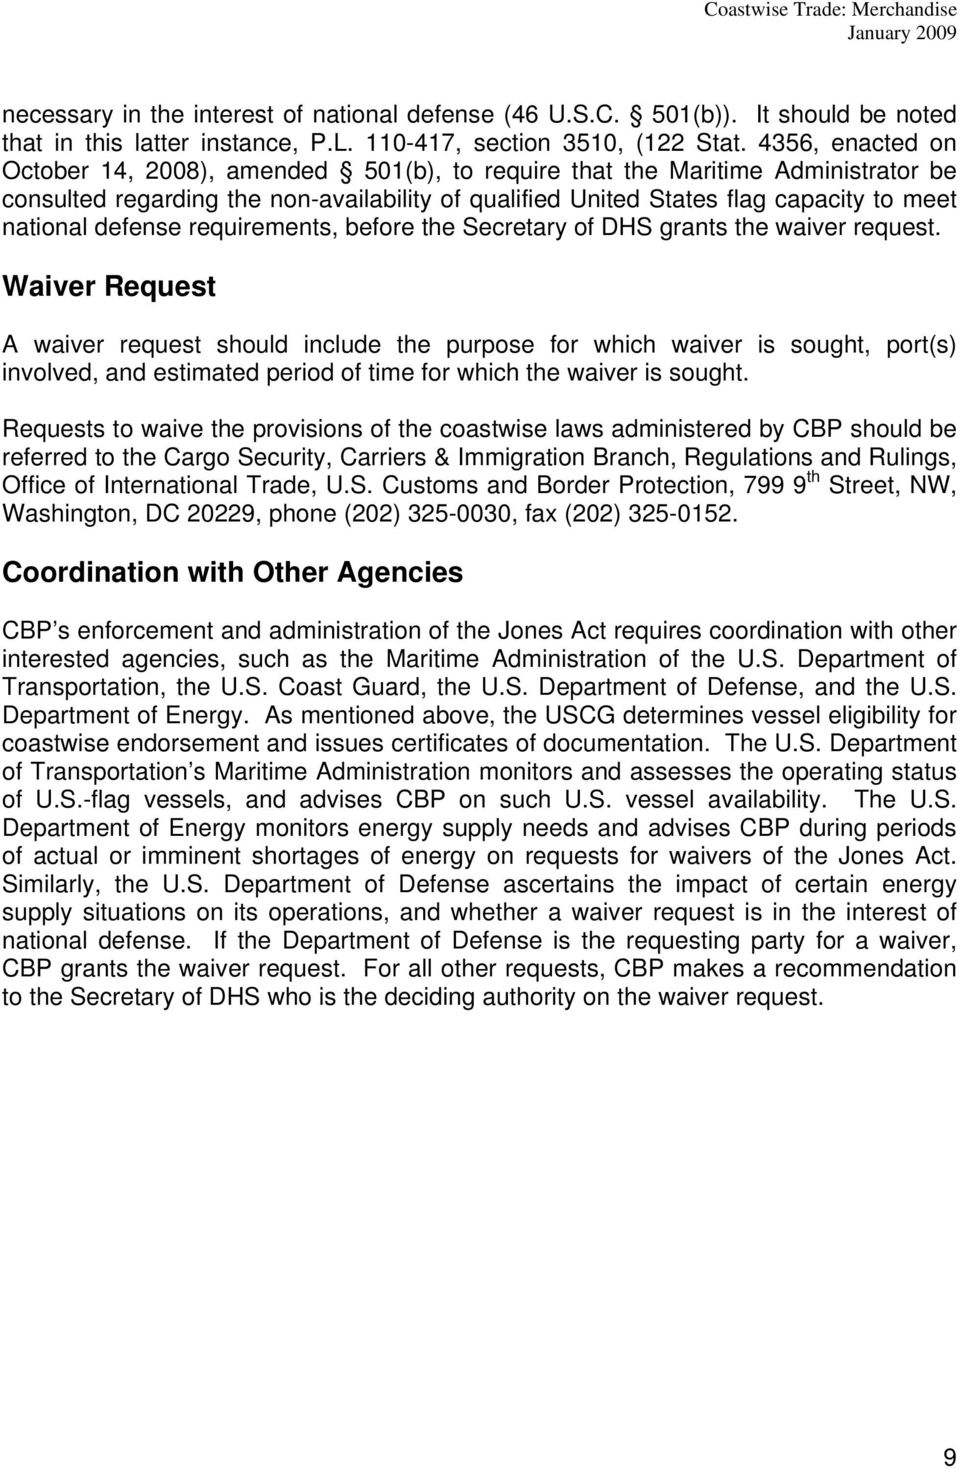 defense requirements, before the Secretary of DHS grants the waiver request.